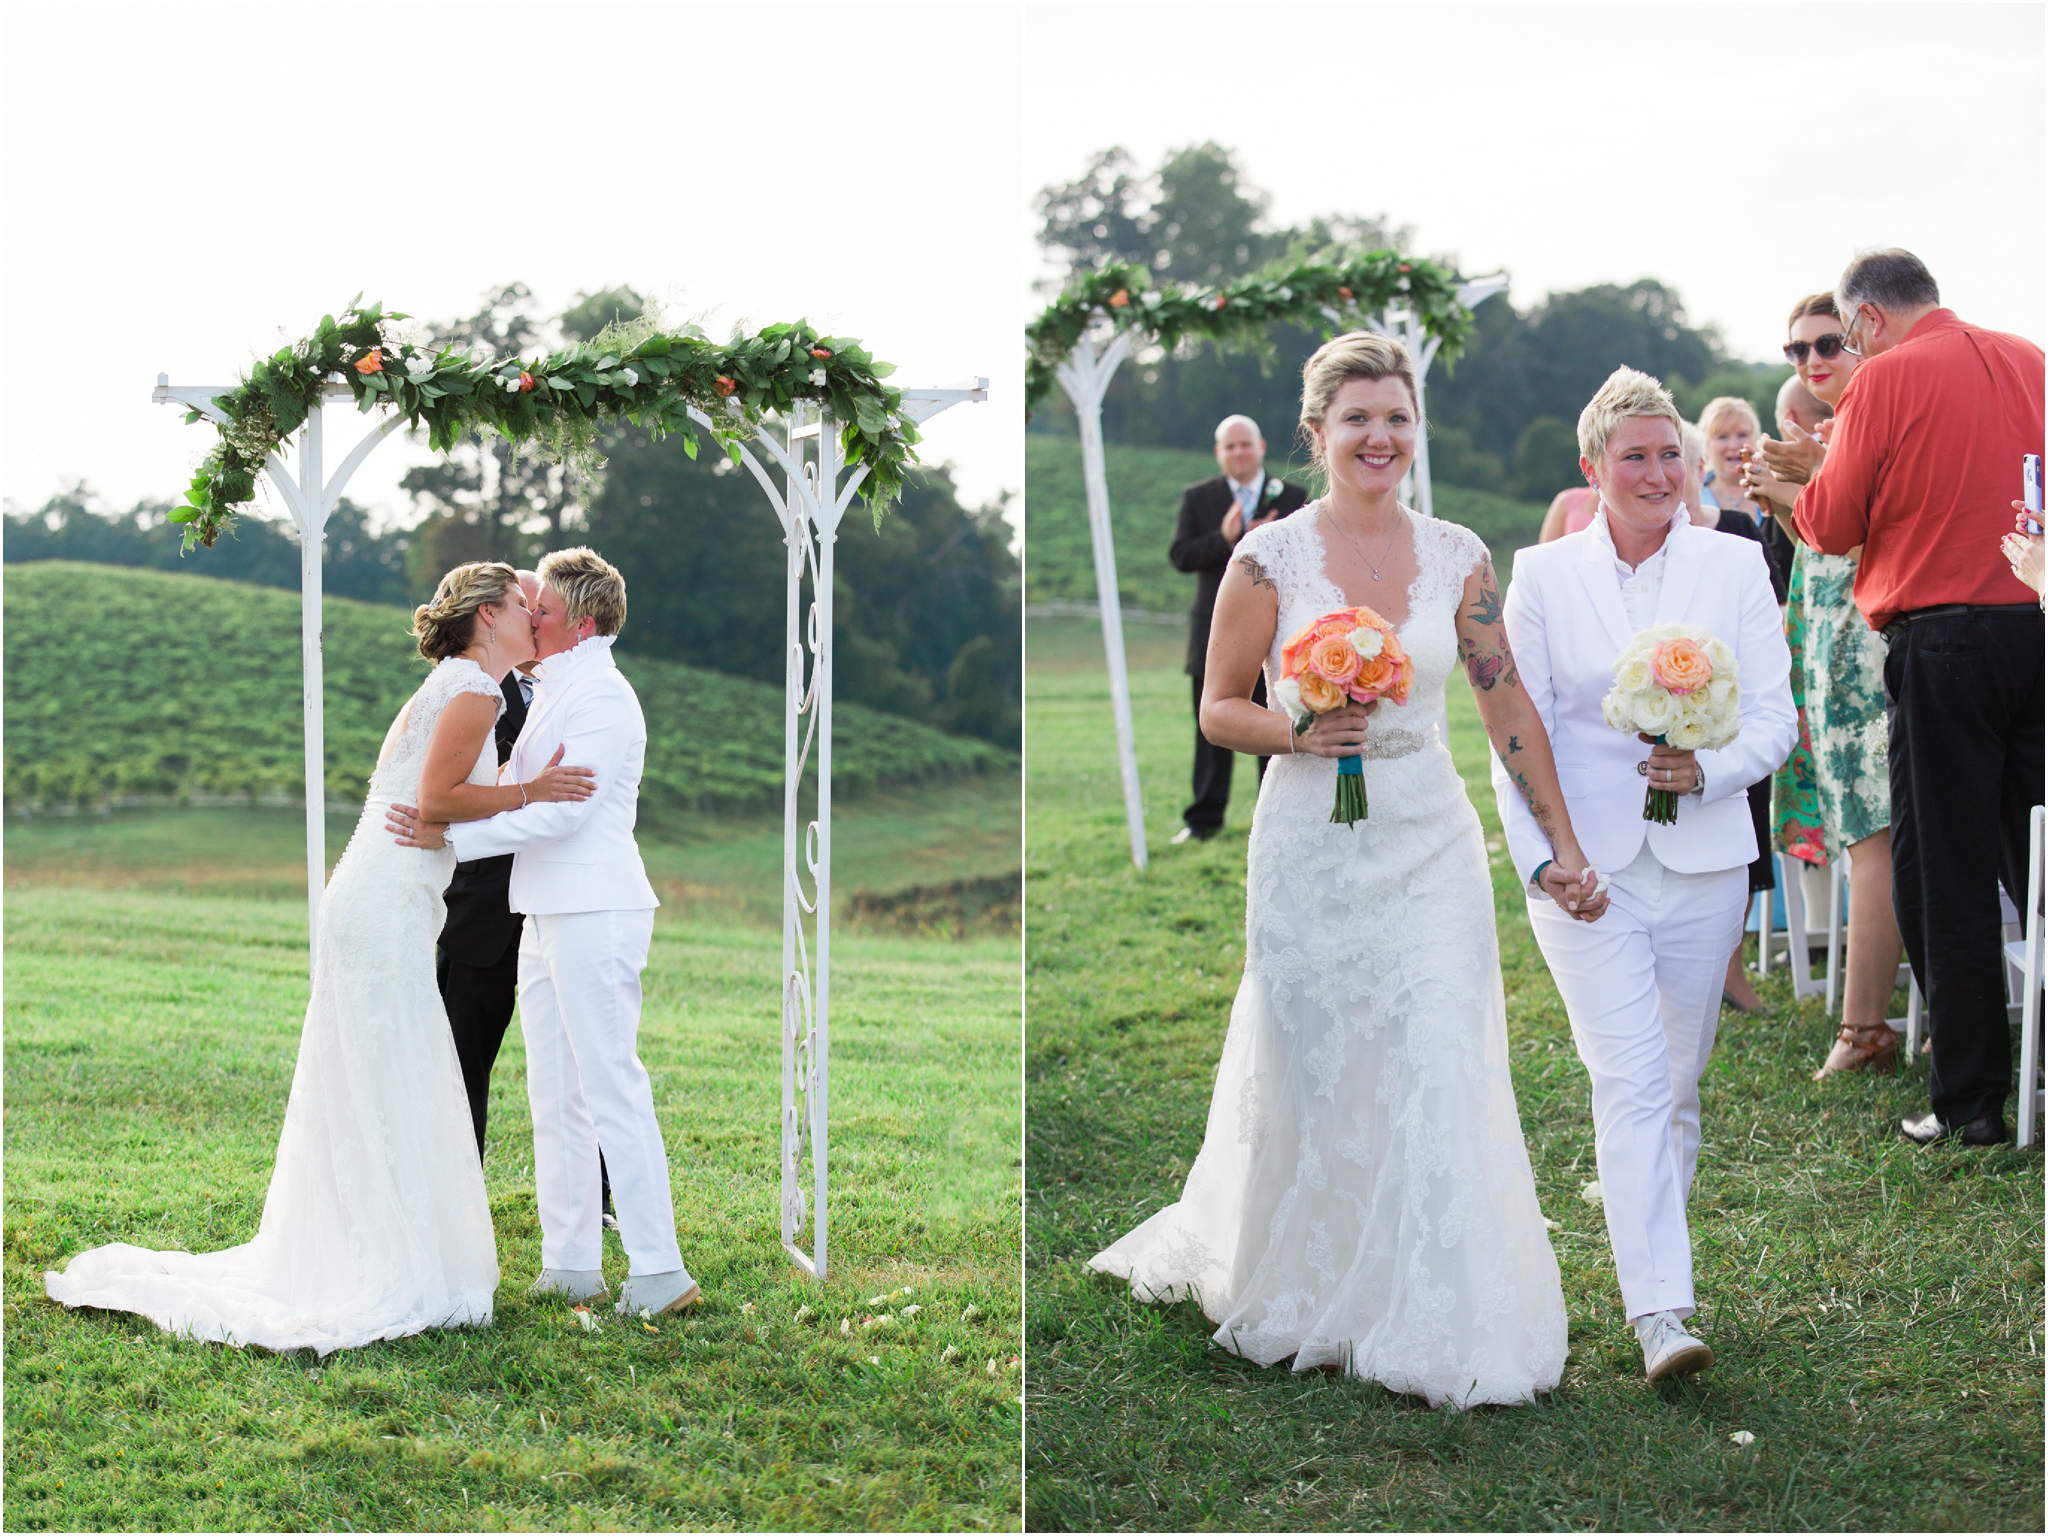 bethany-grace-photography-linganore-winecellars-same-sex-lgbtq-pink-blue-winery-outdoor-wedding-14.JPG